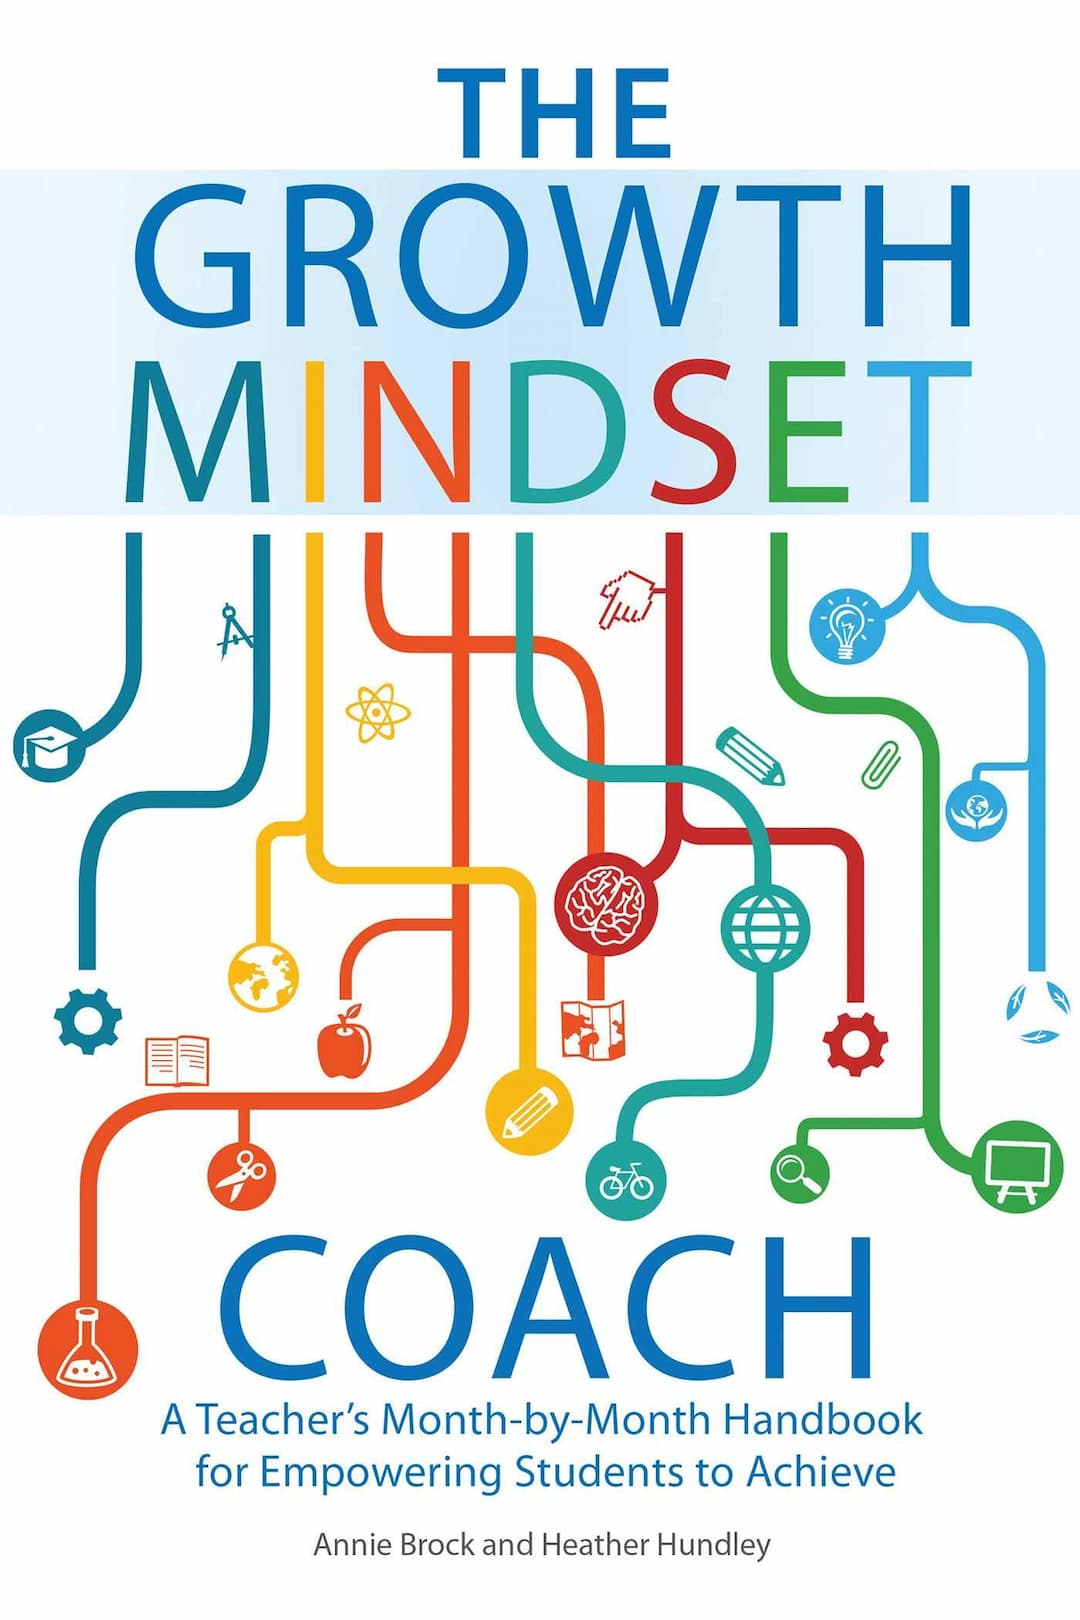 counseling, education, free books, growth mindset, growth mindset book, growth mindset for kids, growth mindset quotes, health & fitness, mindset, mindset book, mindset book by Annie Brock, mindset book review, mindset the new psychology of success, mindsets Annie Brock pdf, motivation, new psychology of success, nonfiction, Organizational Behavior, PDFhive Bestsellers, personal growth, psychology, Self Help, the growth mindset book, The Growth Mindset Coach by Annie Brock, The Growth Mindset Coach by Annie Brock pdf, The Growth Mindset Coach pdf